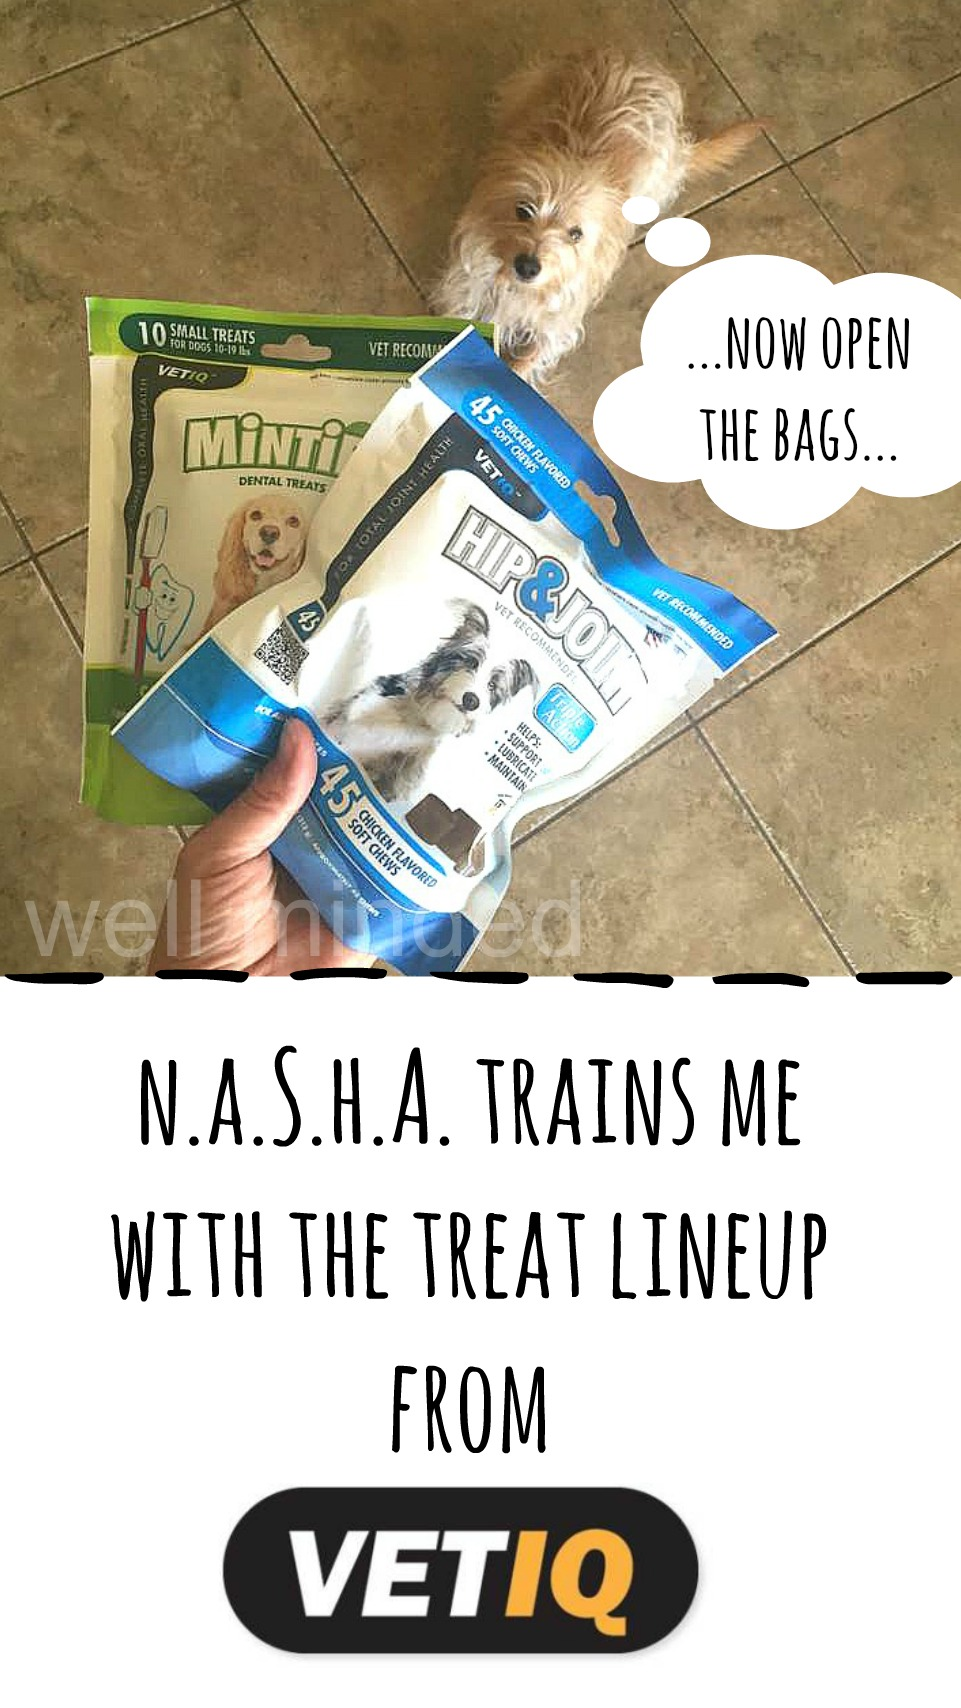 N.A.S.H.A. Trains Me with the Treat Lineup from VetIQ. wellmindedpets.com